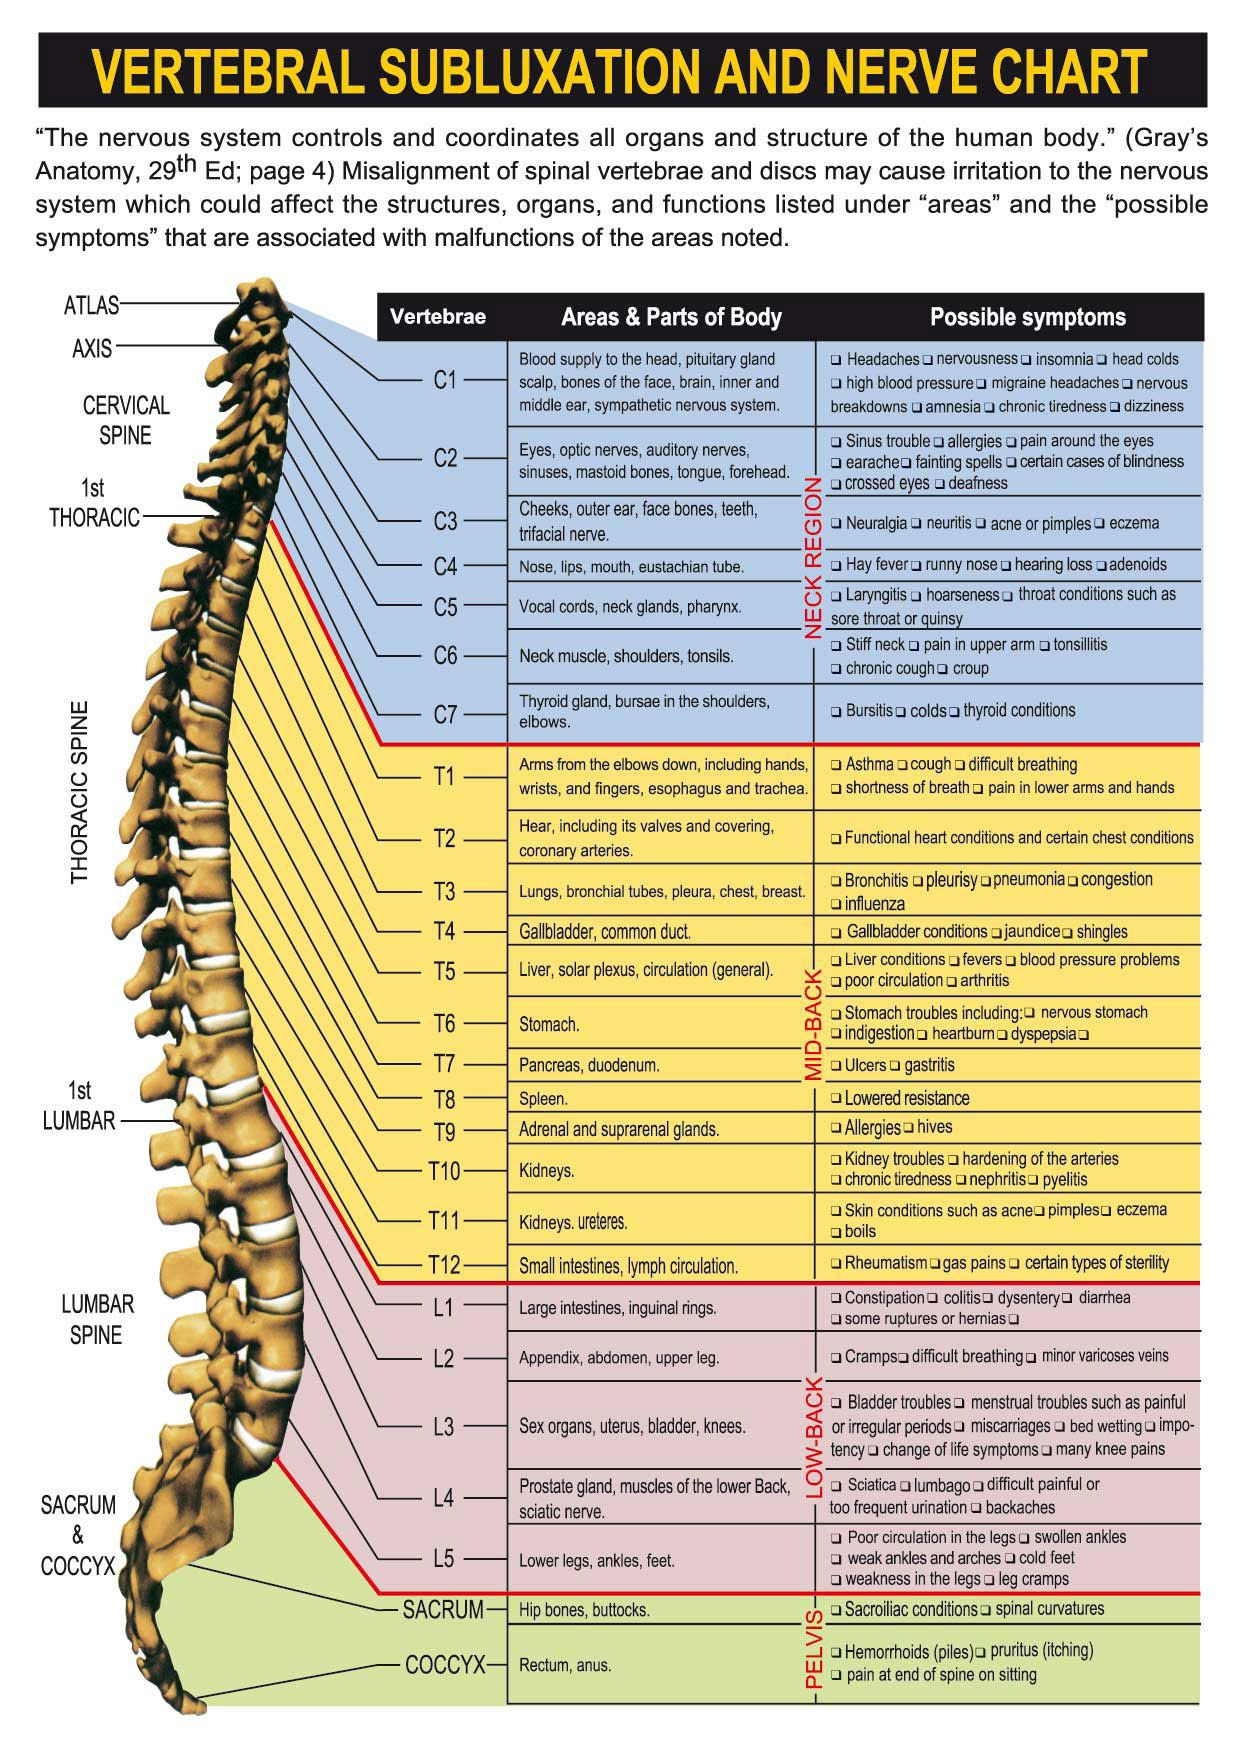 Spinal Nerve Chart With Effects Of Vertebral Subluxations